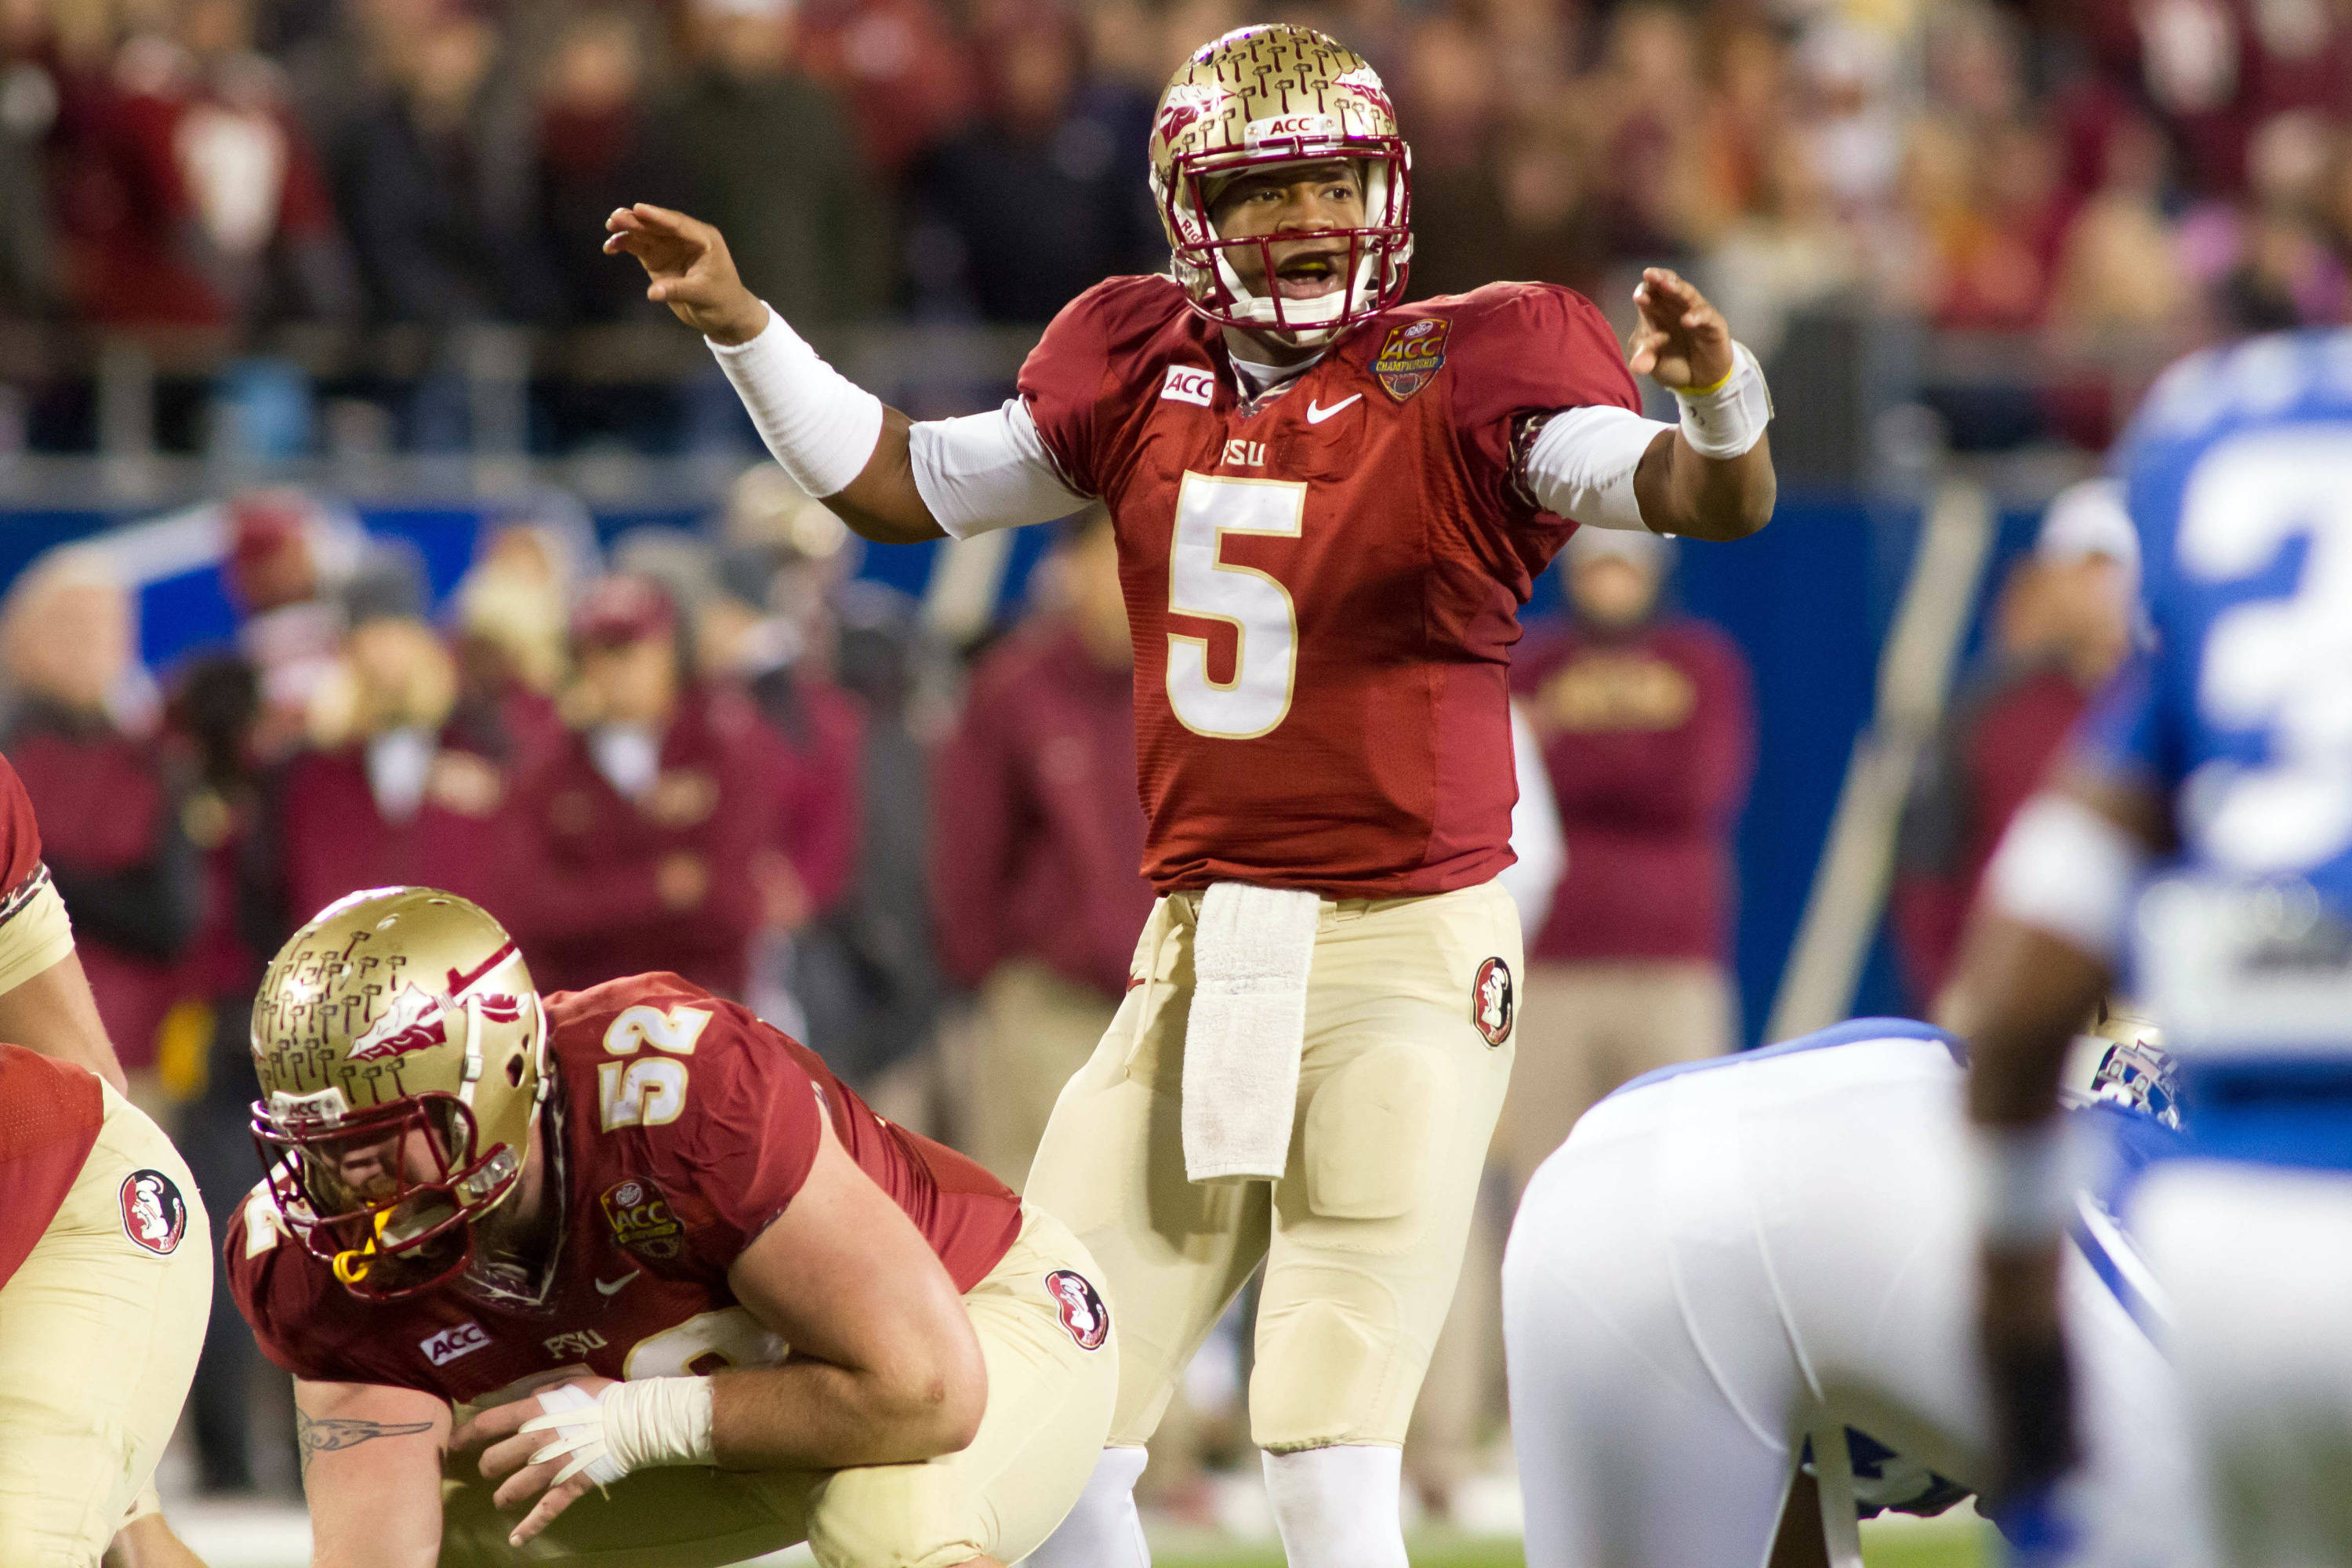 Dec 7, 2013; Charlotte, NC, USA; Florida State Seminoles quarterback Jameis Winston (5) calls out during the second quarter against the Duke Blue Devils at Bank of America Stadium. Mandatory Credit: Jeremy Brevard-USA TODAY Sports